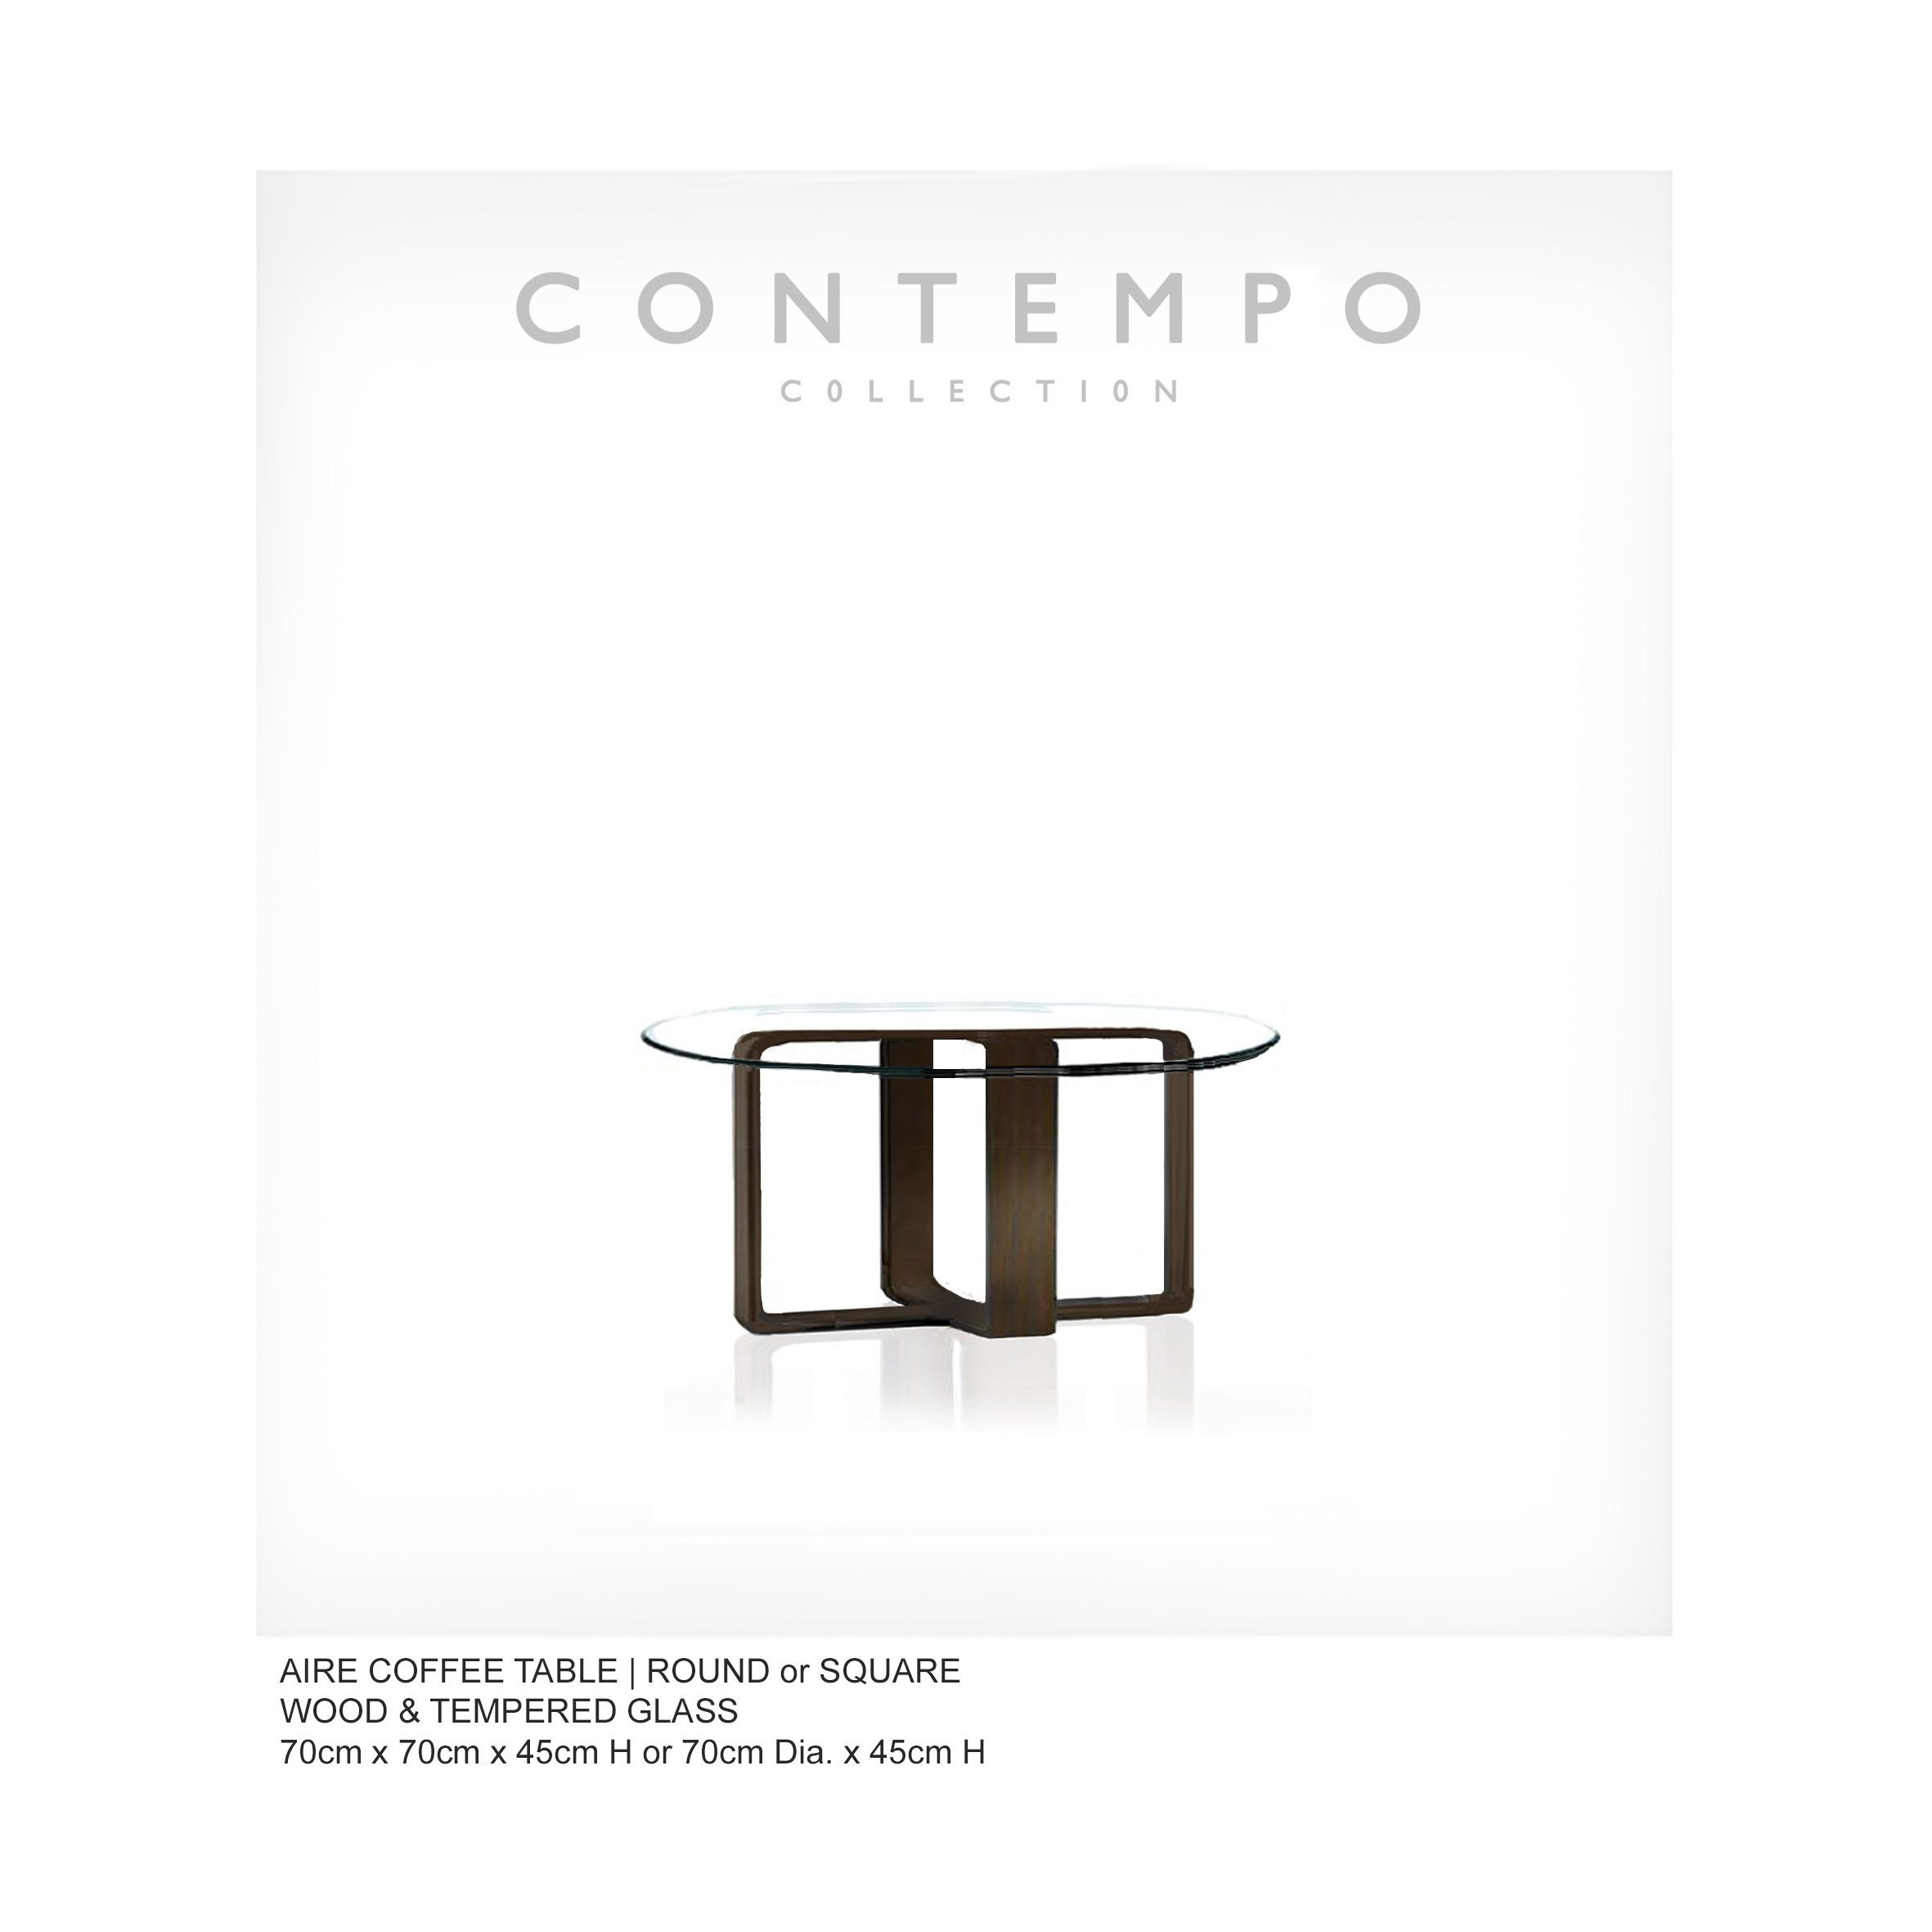 Lr Aire Coffee Table Round The Contempo Collection Was Created For The Premier Condominium Lifestyle It Has The Ve Luxury Furniture Stores Luxury Furniture Contemporary Living Room Furniture